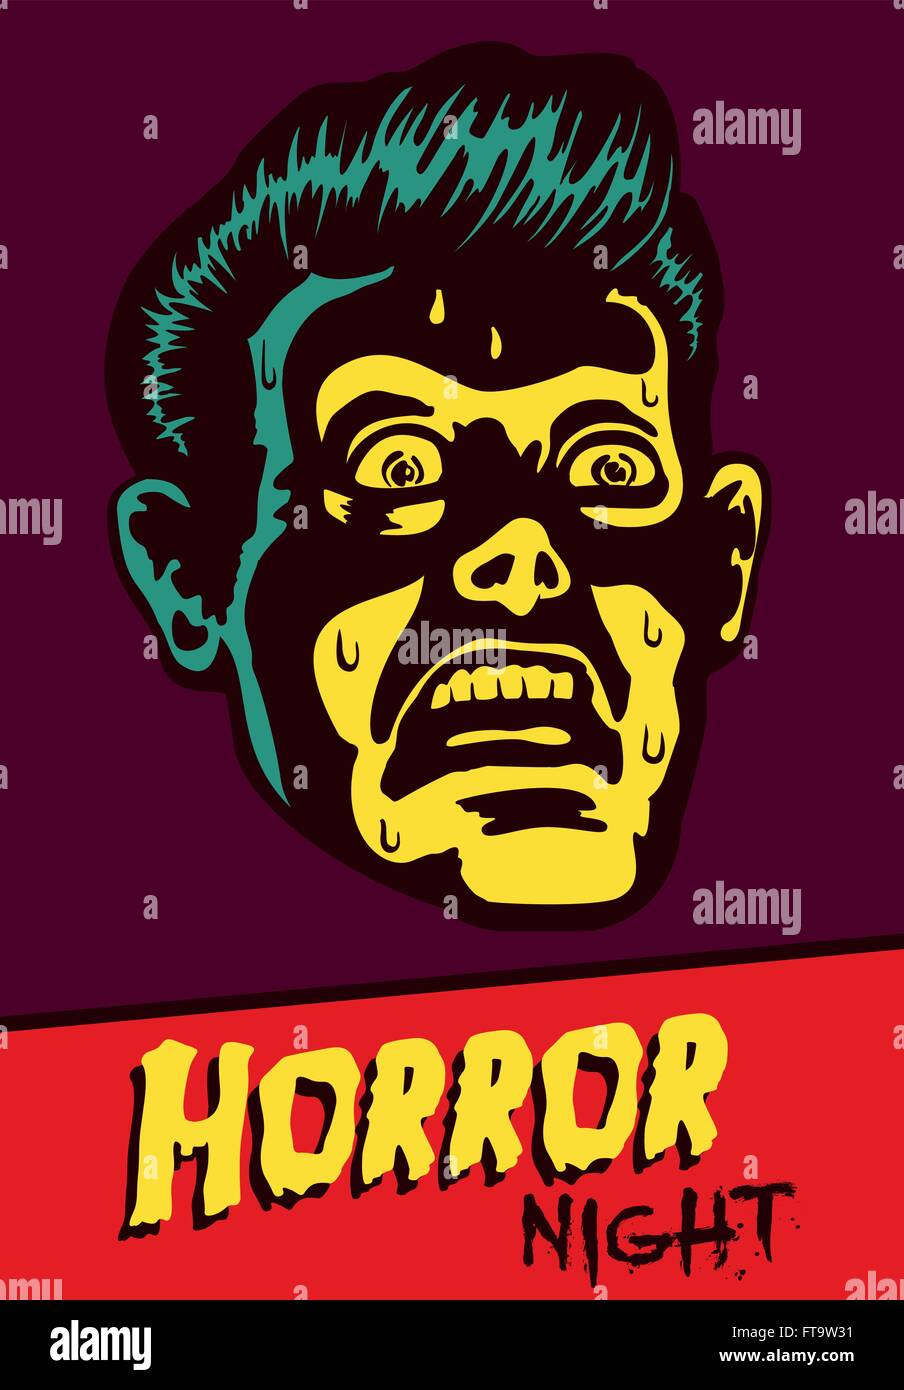 horror night halloween party or movie night event flyer vector